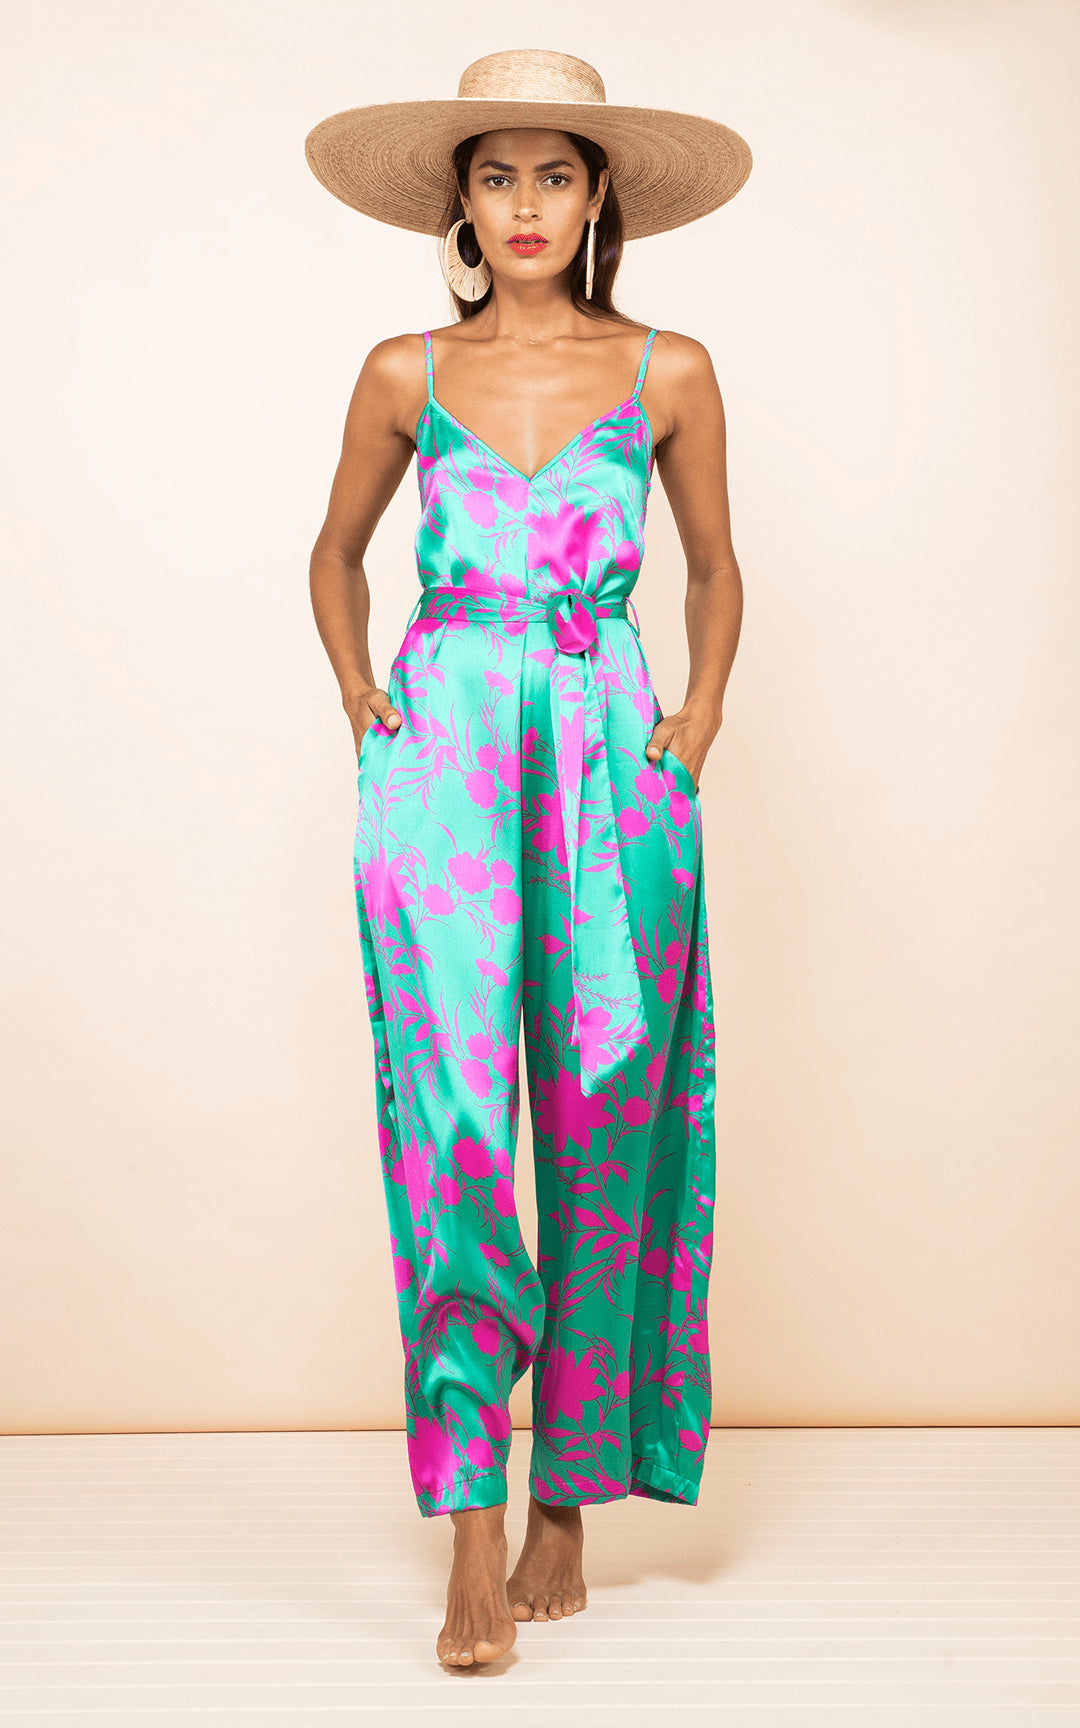 Dancing leopard model wears Gabriella Jumpsuit Silhouette Pink on Green facing forward with hands in pockets